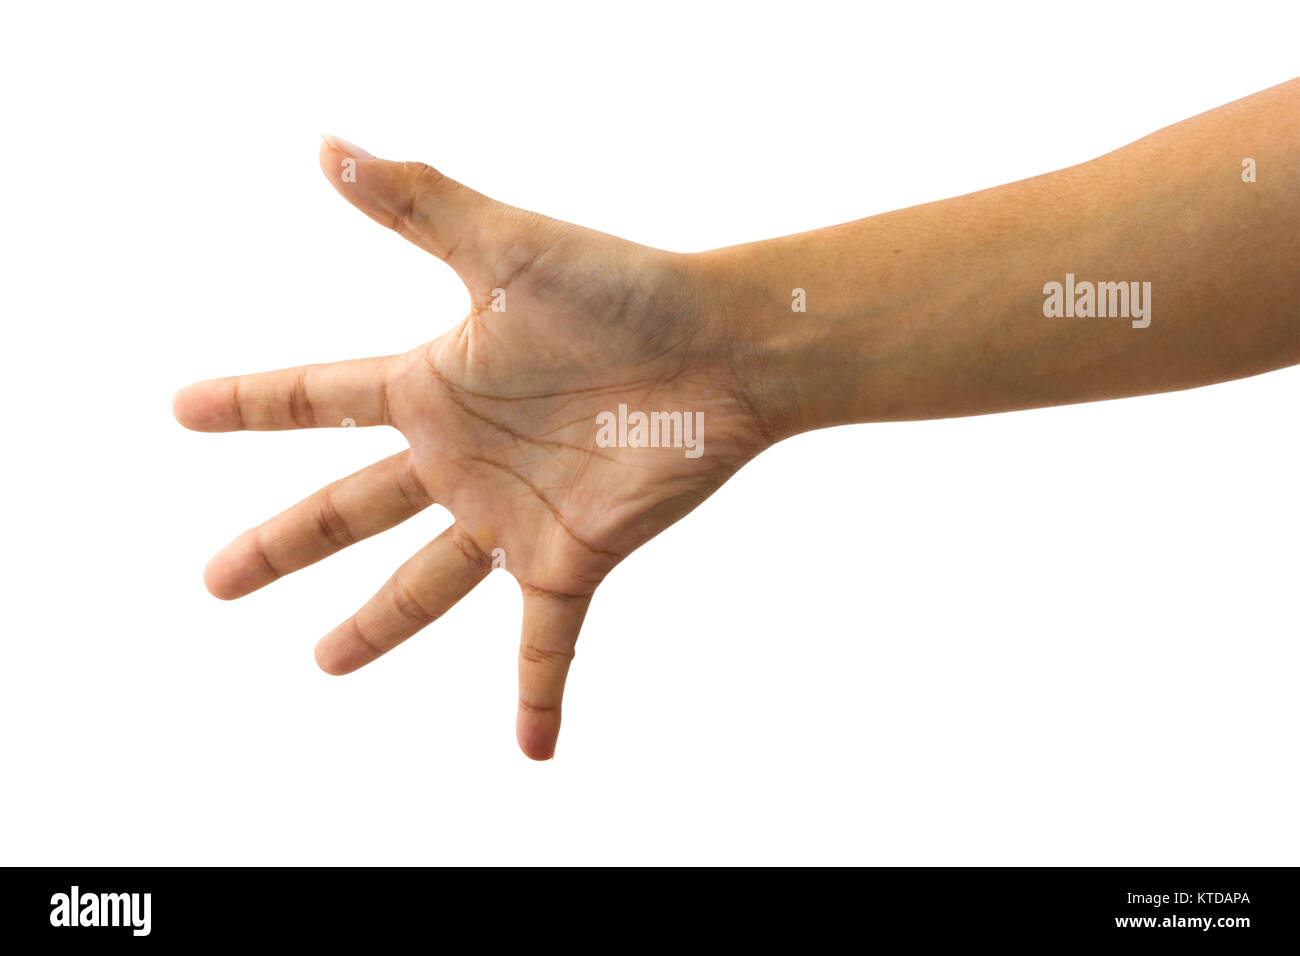 female hand gesture showing hi five or stop sign isolated on white